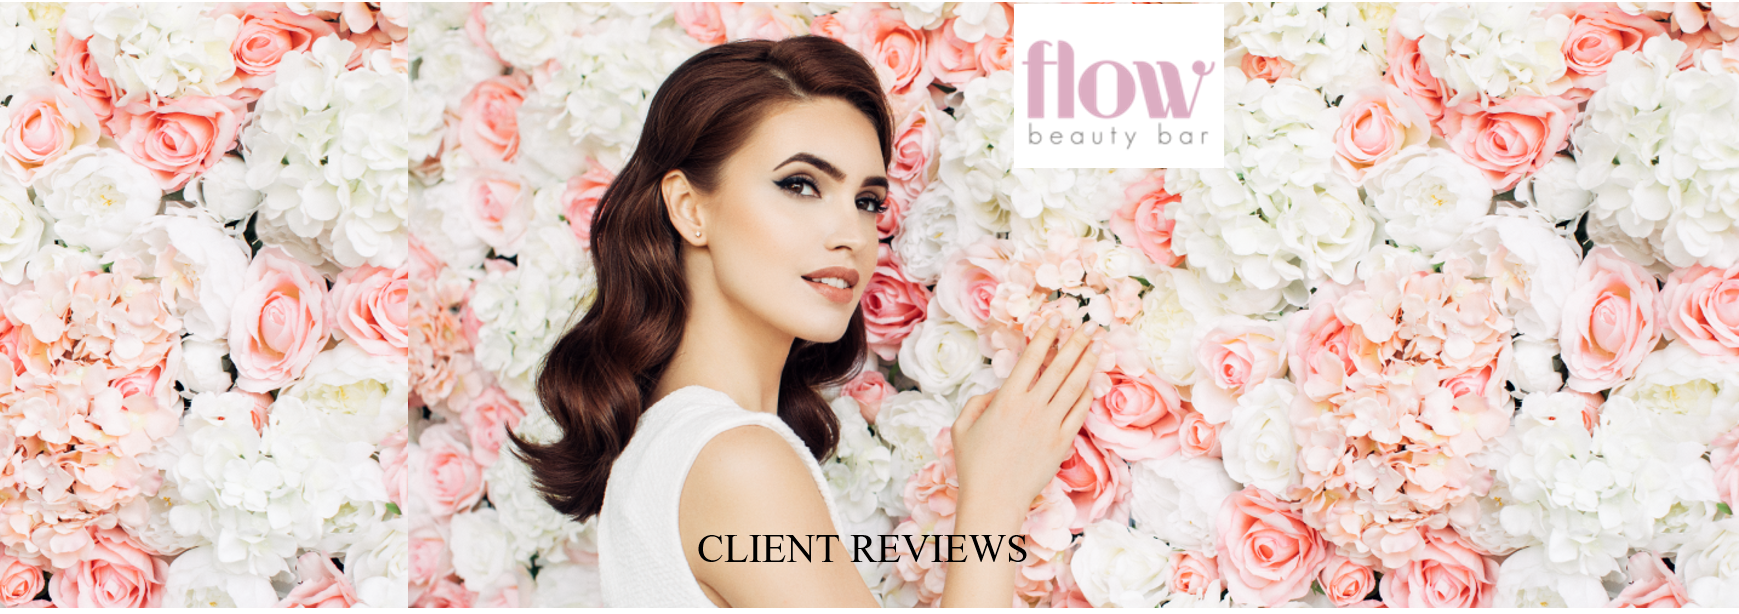 Flow Beauty Bar reviews | Blow Dry/Out Services at 44719 Brimfield Dr - Ashburn VA